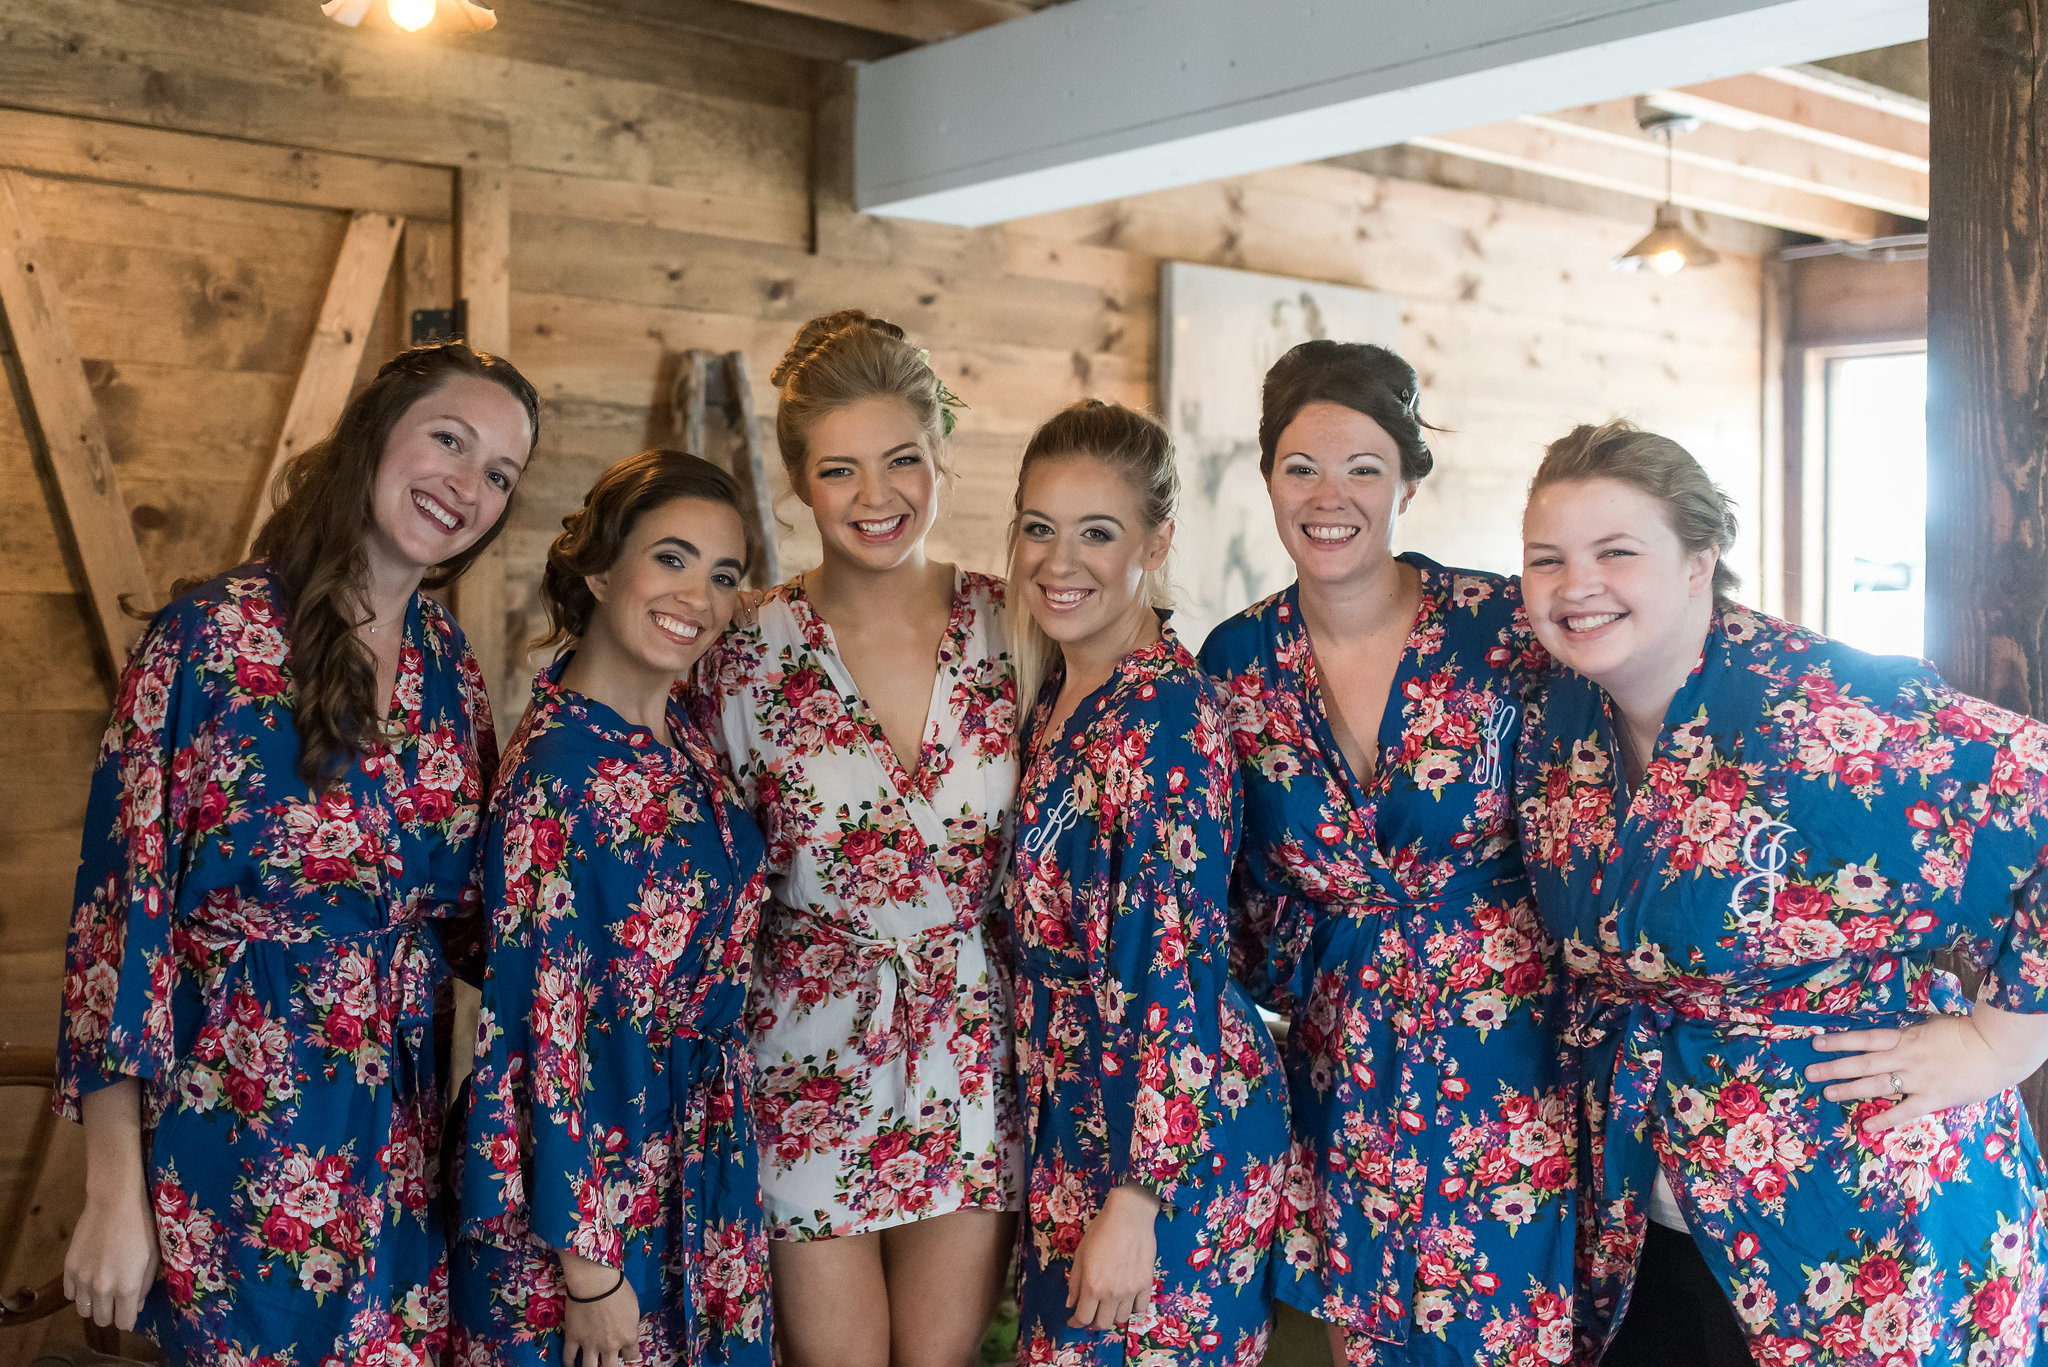 bridal party getting ready photo in matching robes navy with floral printKelly Birch Photography :: Bloom Lake Barn :: Sixpence Events Minnesota wedding planner :: A Vintage Touch Weddings :: Brett Dorian.jpg